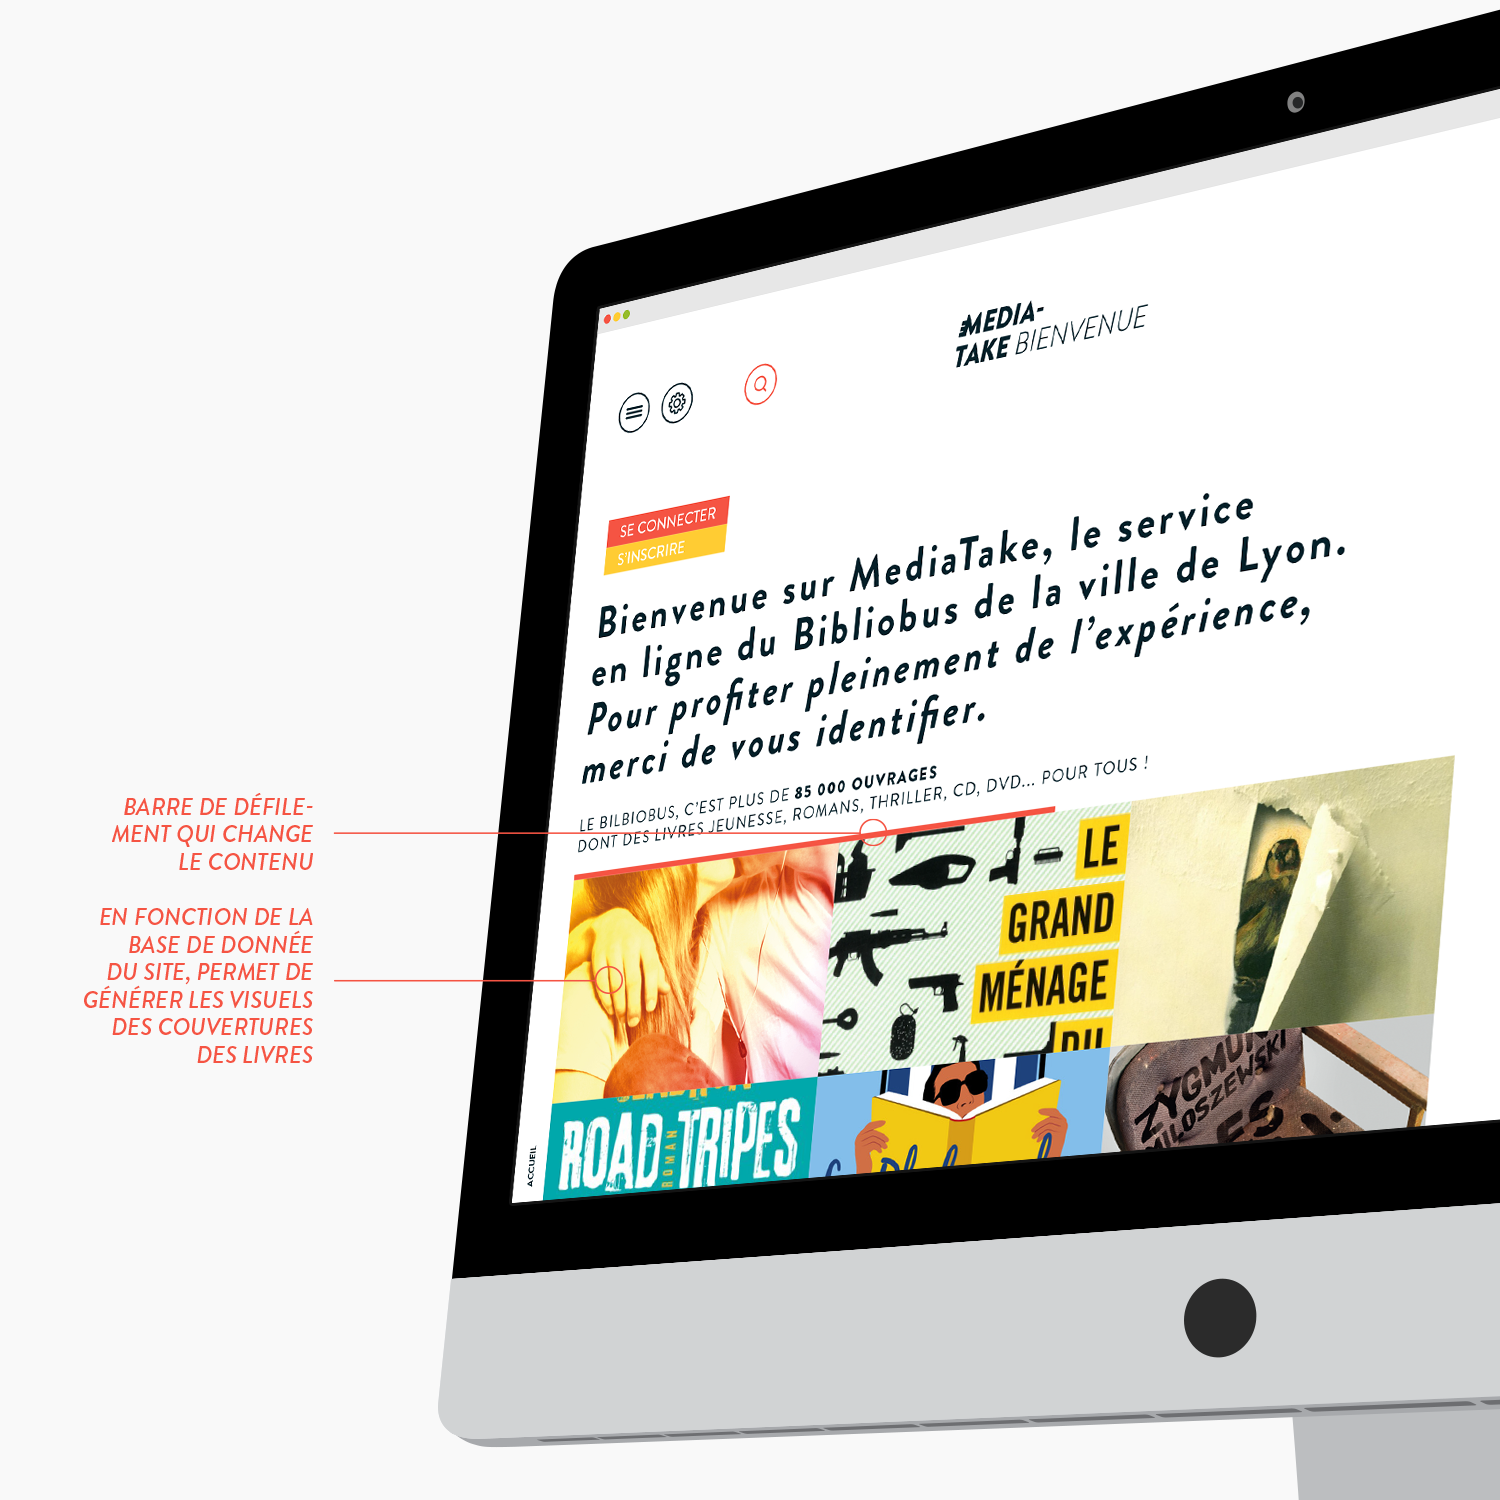 MediaTake - la culture mobile - accueil par Quentin Degrange, designer graphique freelance